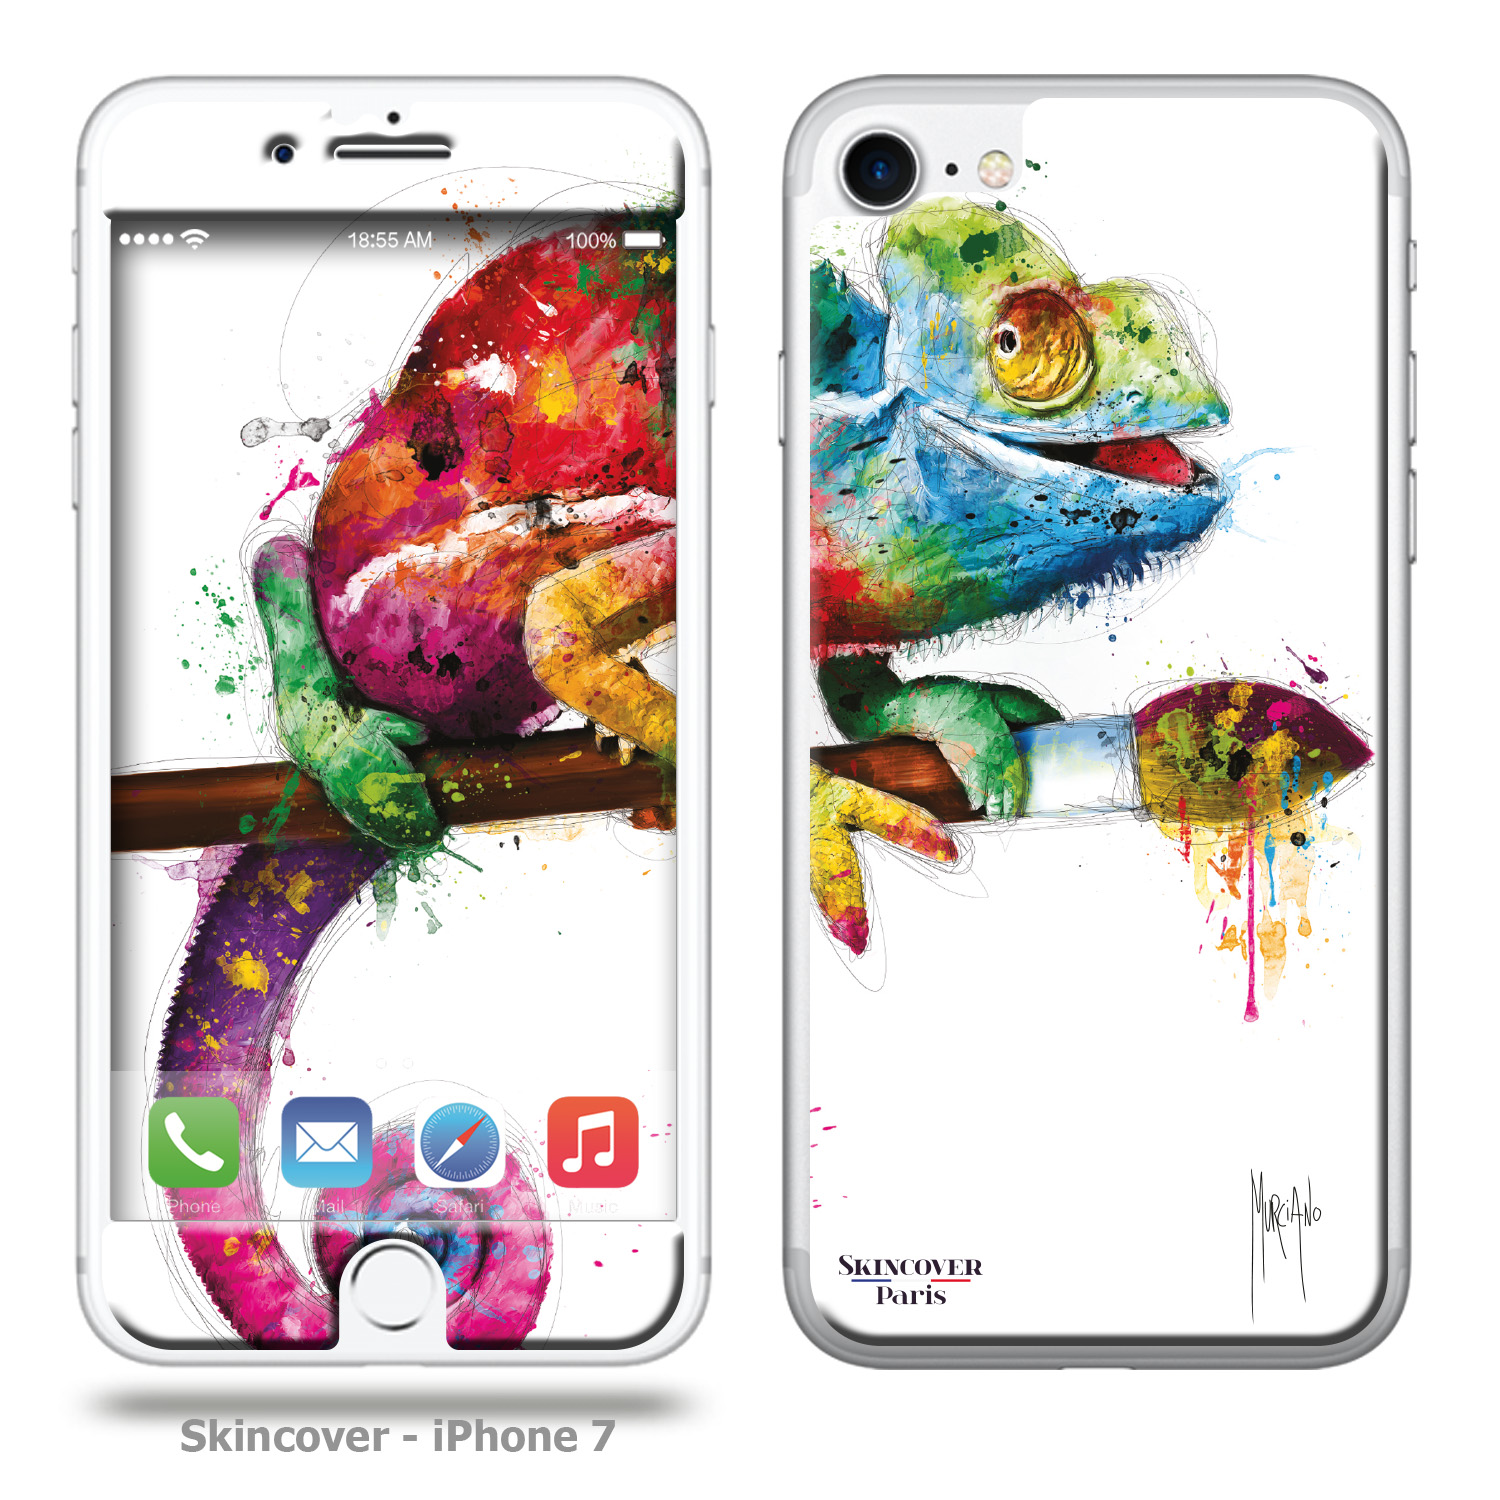 Pop Evolution Skincover Iphone 7 Patrice Murciano